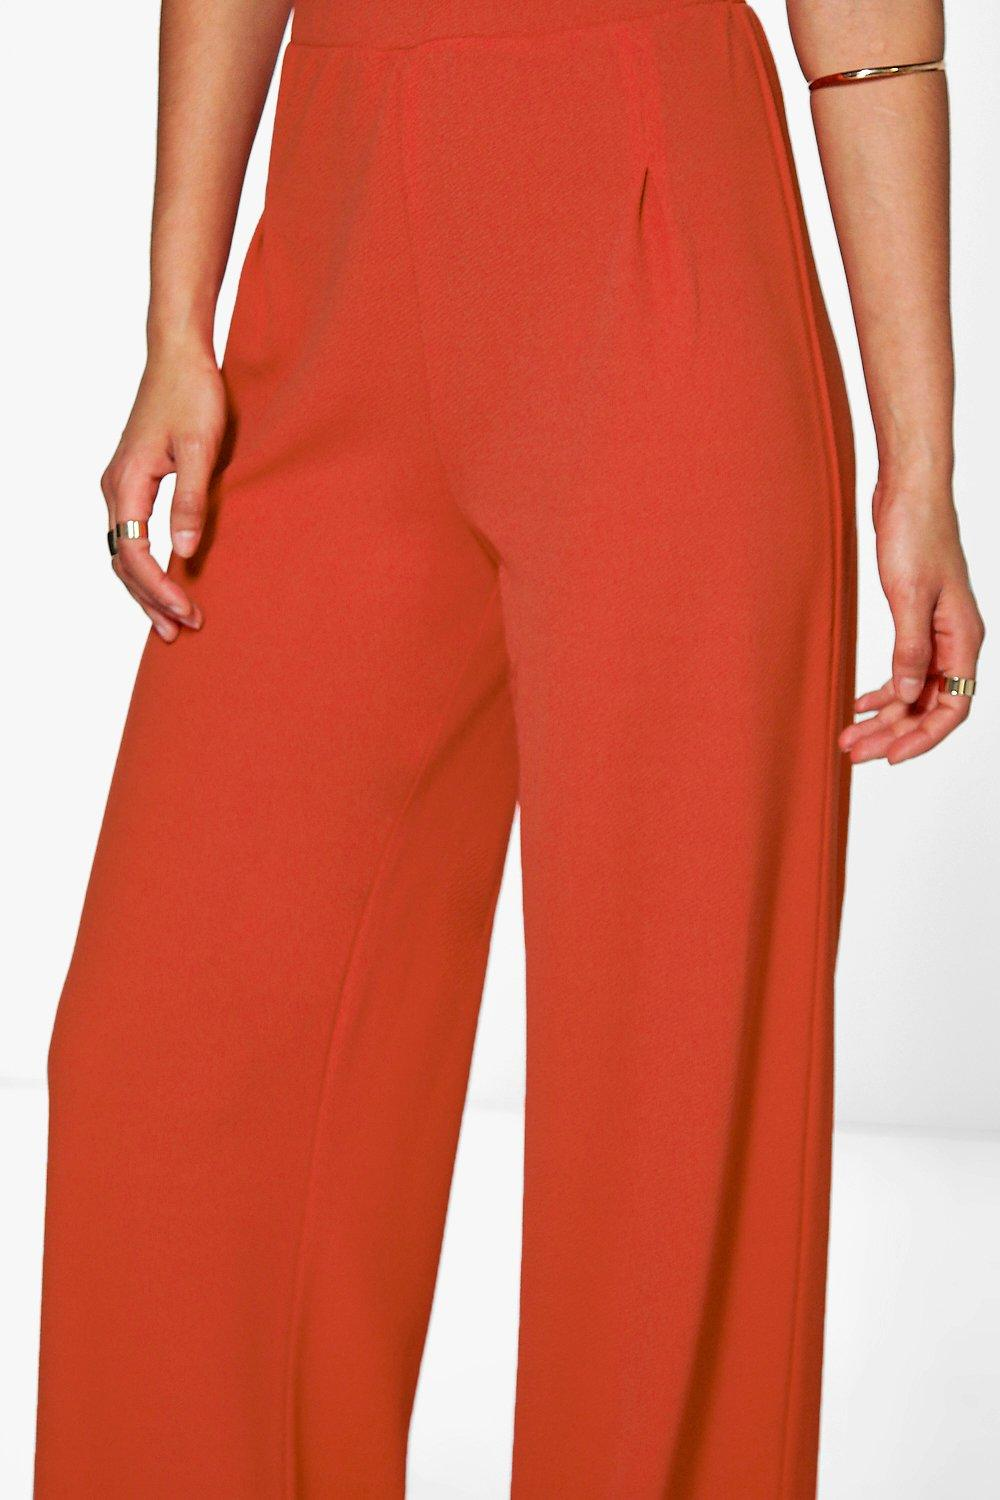 These % Polyester ladies pleated pants are available in black with pockets in the front and one in the back. While fastened with a brass-zippered hook and eye closure, the rubberized waistband allows for 2 inch expansion.